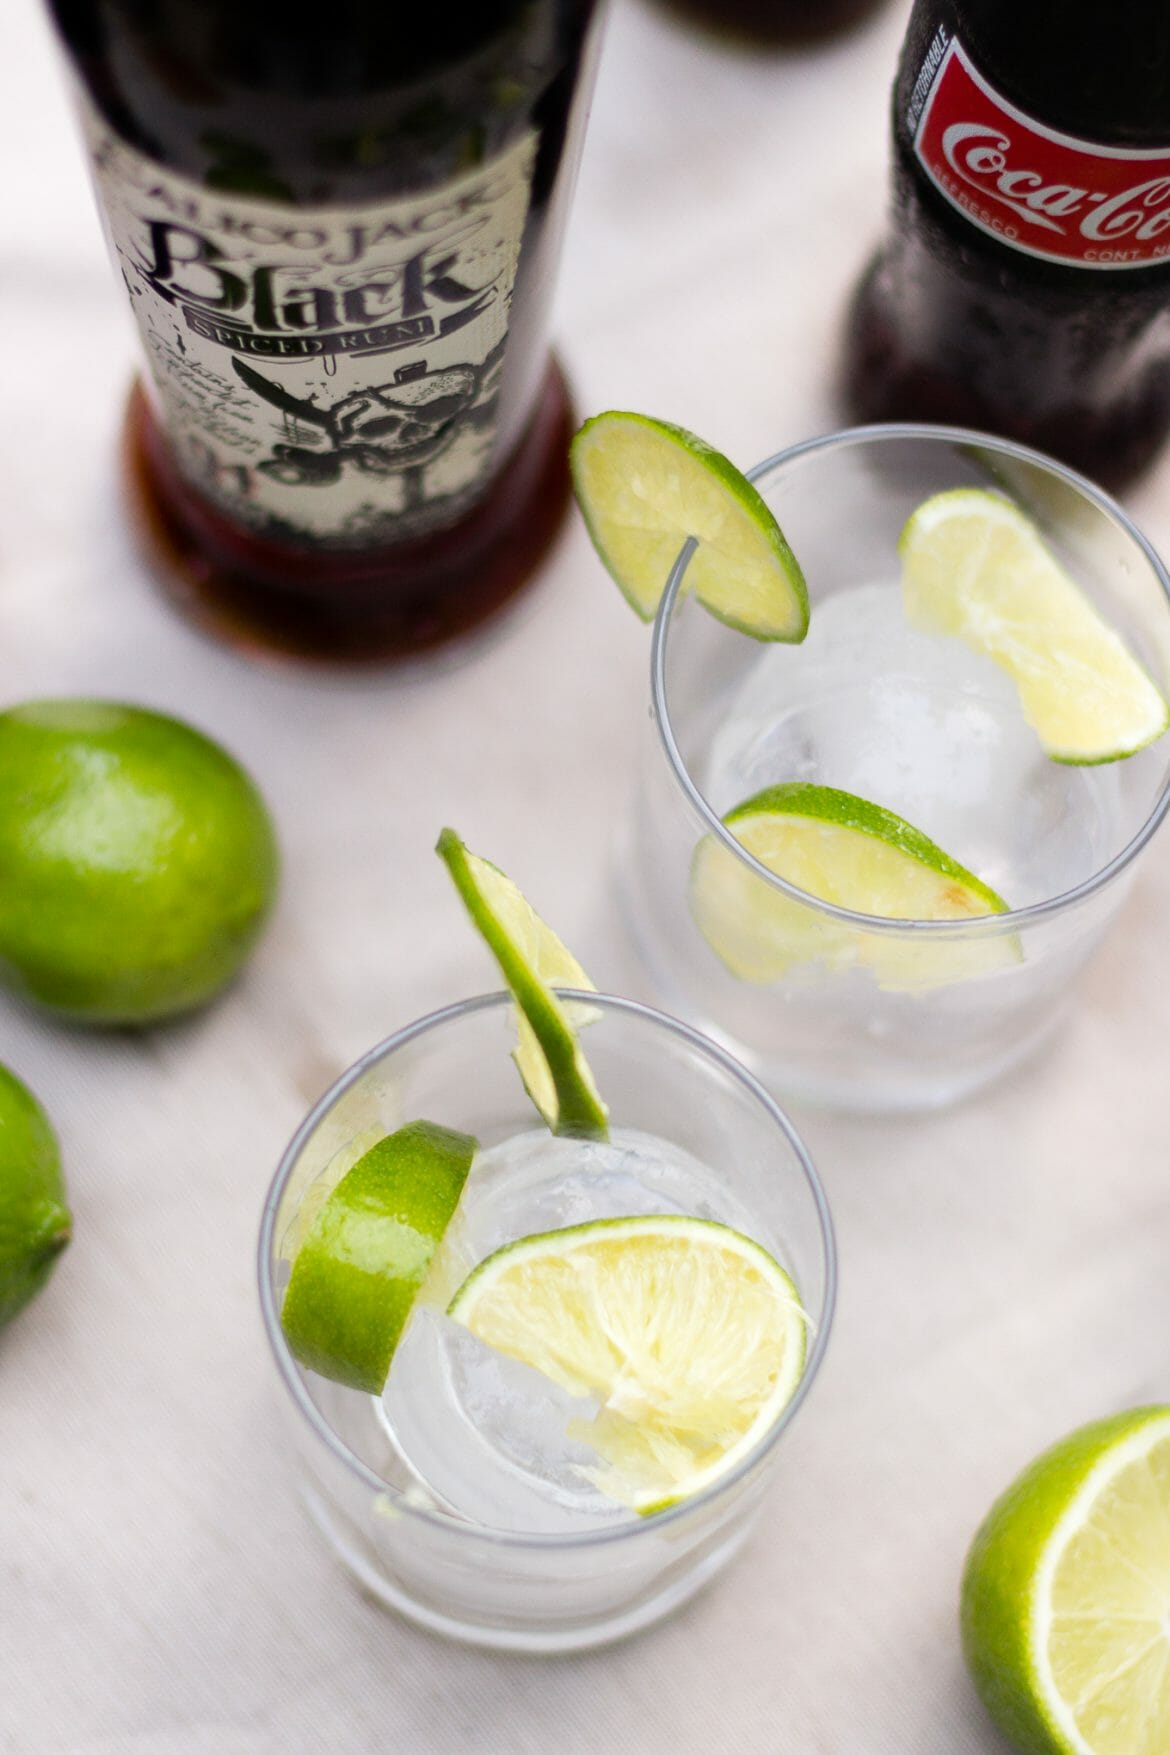 calico jack spiced rum, cuba libres, cocktail recipe, sponsored post, how to make a rum and coke